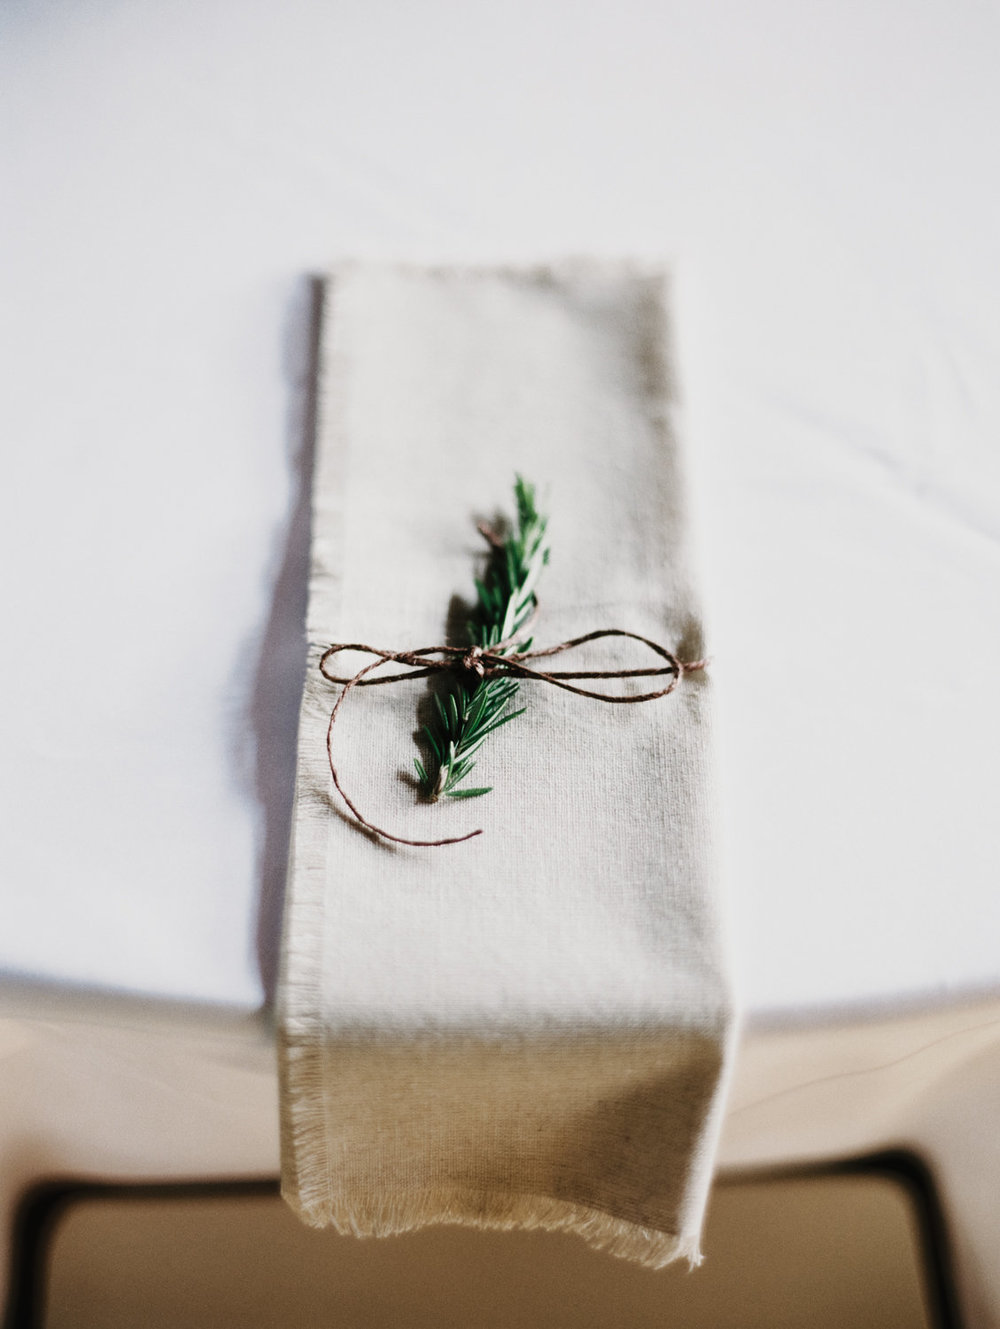 The addition of a Rosemary sprig on each napkin brought the flowers to each guest.